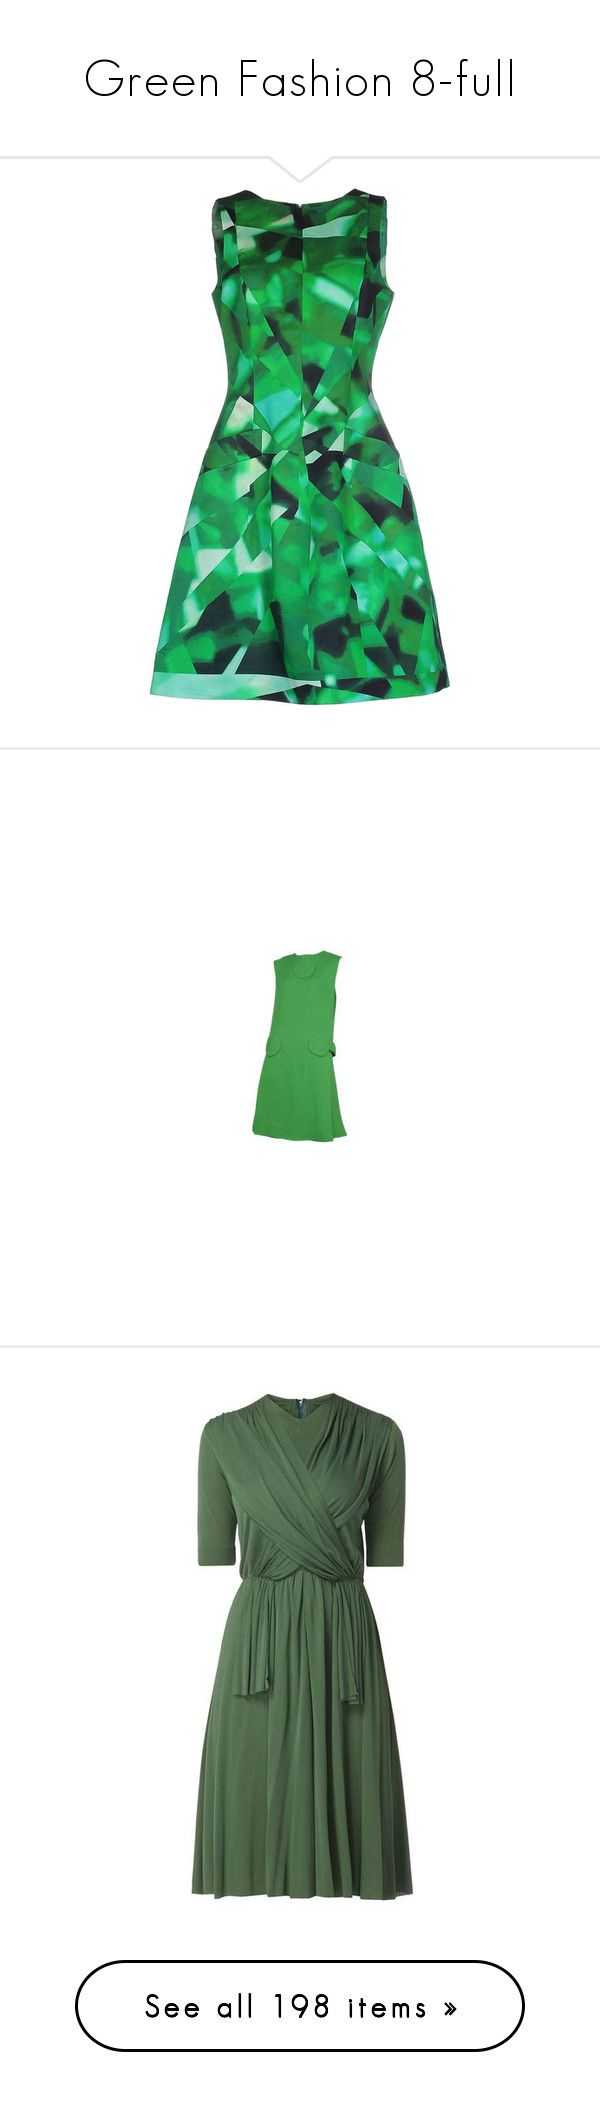 """""""Green Fashion 8-full"""" by franceseattle ❤ liked on Polyvore featuring dresses, green, rayon dress, trapeze dress, tent dress, green knee length dress, oscar de la renta dresses, pierre cardin, vintage dresses and pre owned dresses"""